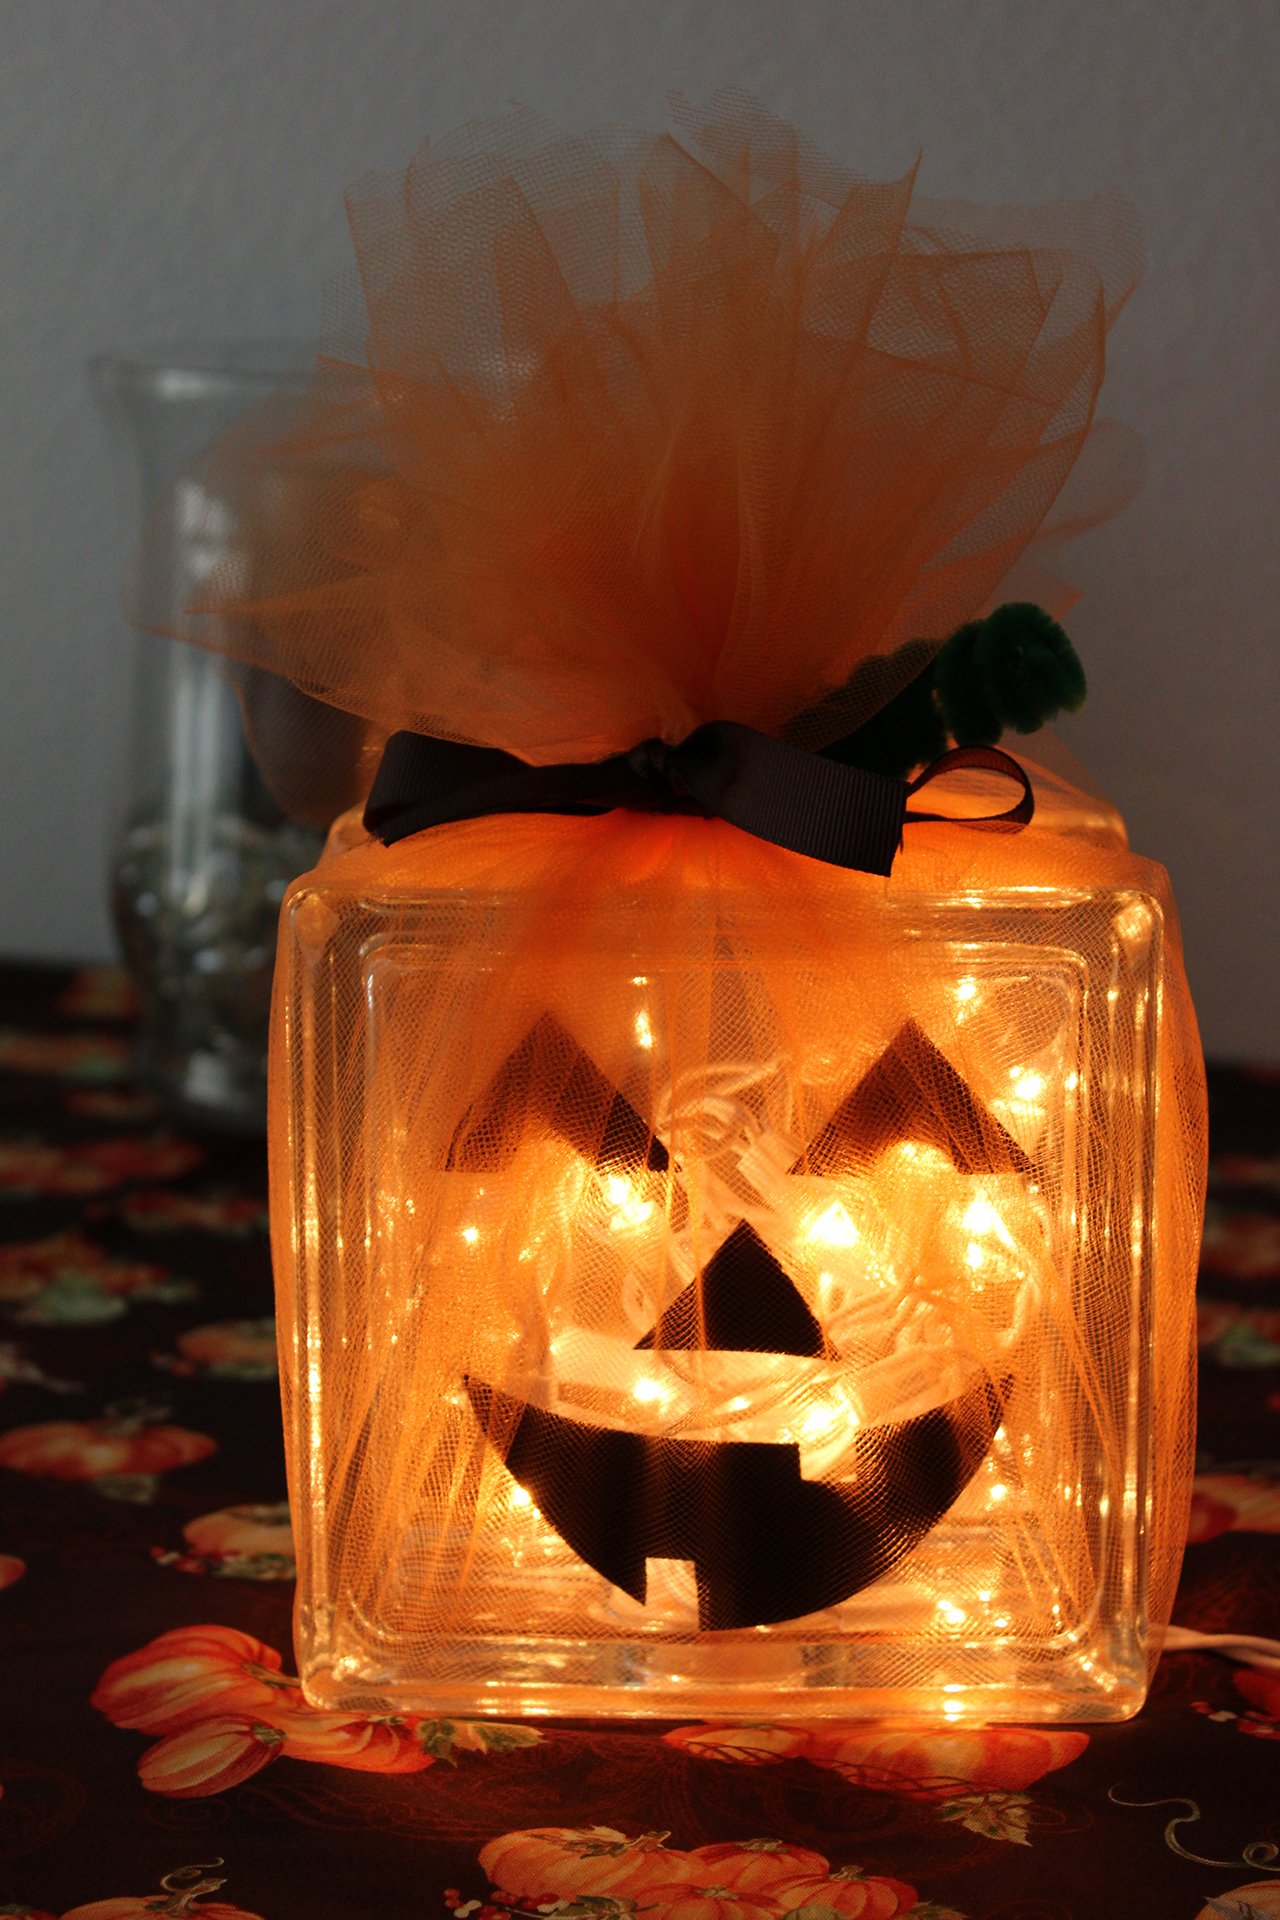 50 Best Indoor Halloween Decoration Ideas for 2017 - Indoor Pumpkin Decorations